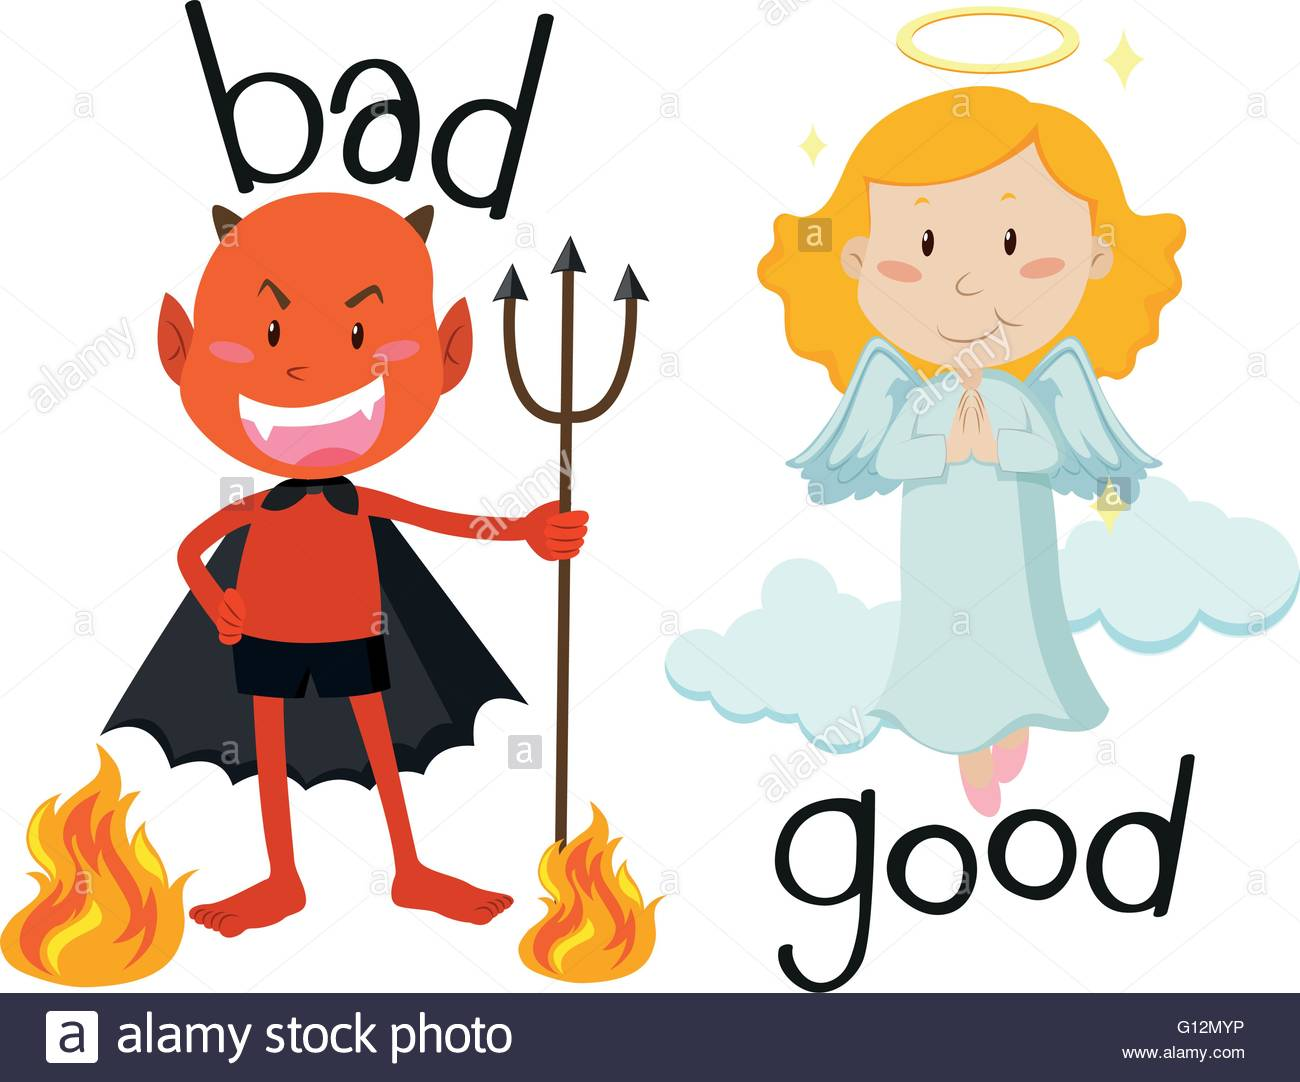 1300x1082 Opposite Adjectives Good And Bad Illustration Stock Vector Art